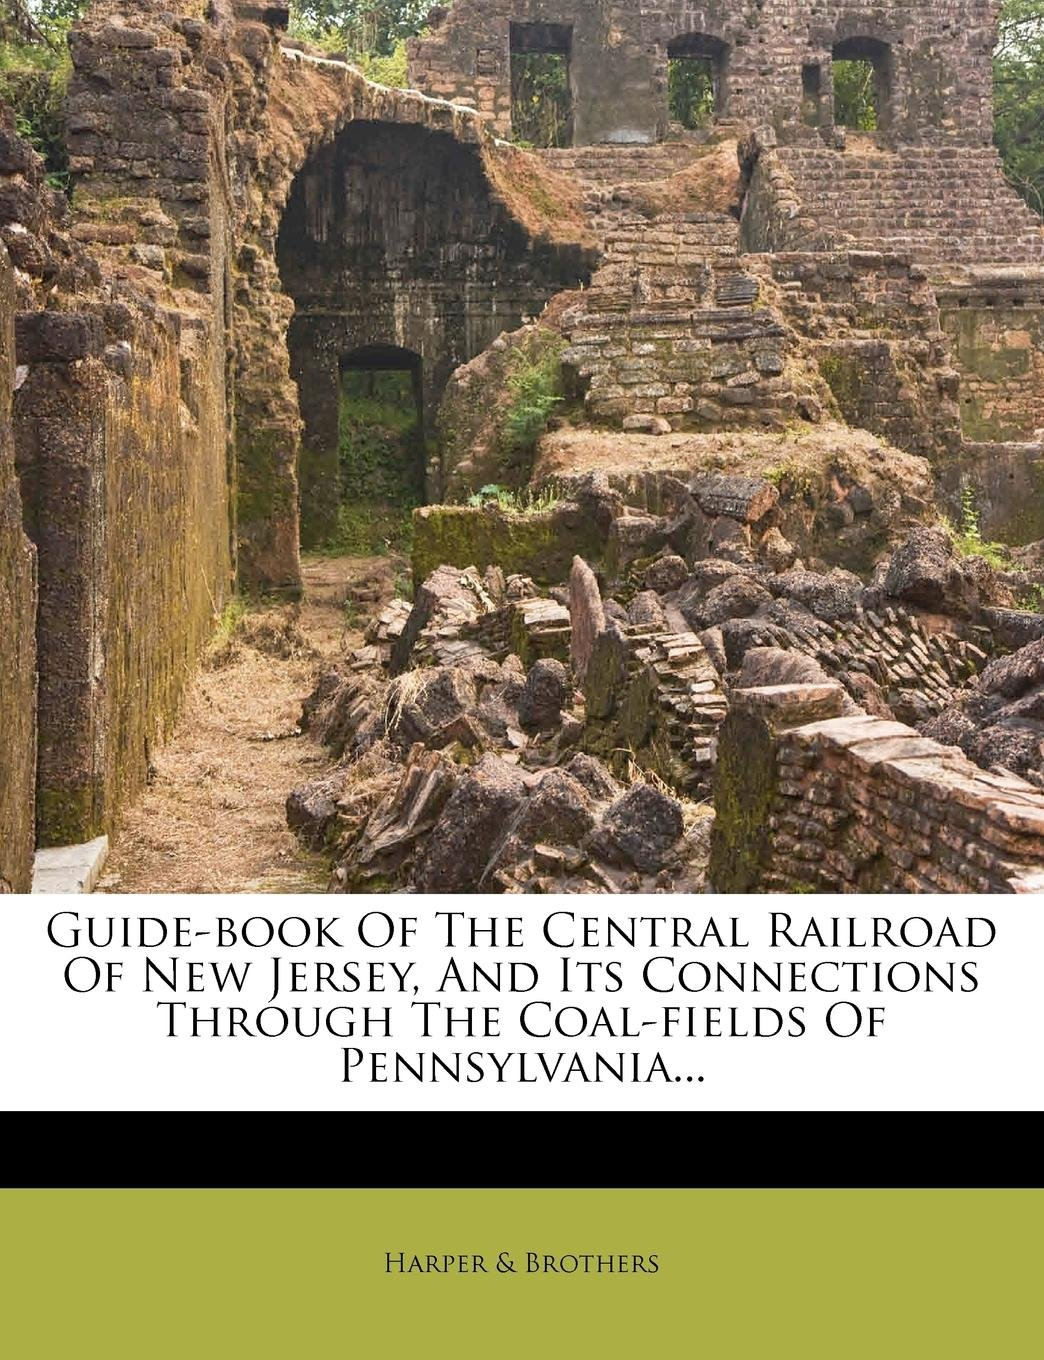 Guide-book Of The Central Railroad Of New Jersey, And Its Connections Through The Coal-fields Of Pennsylvania... PDF